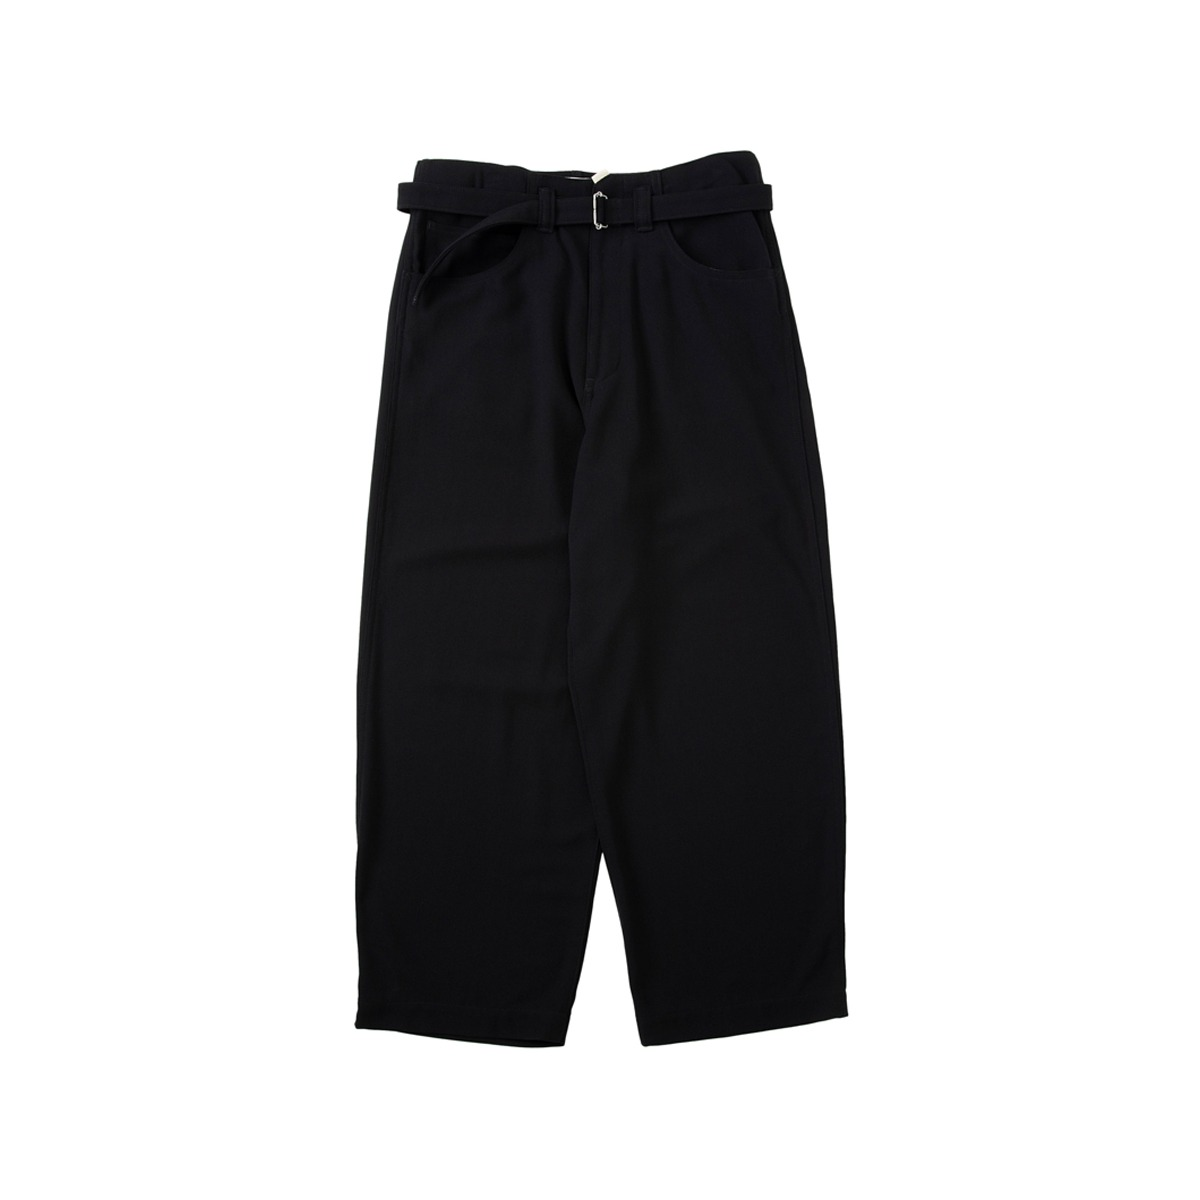 [SABY] SUPER BIG PANTS - 40/4 DRY HEAVY TWILL 'BLACK'